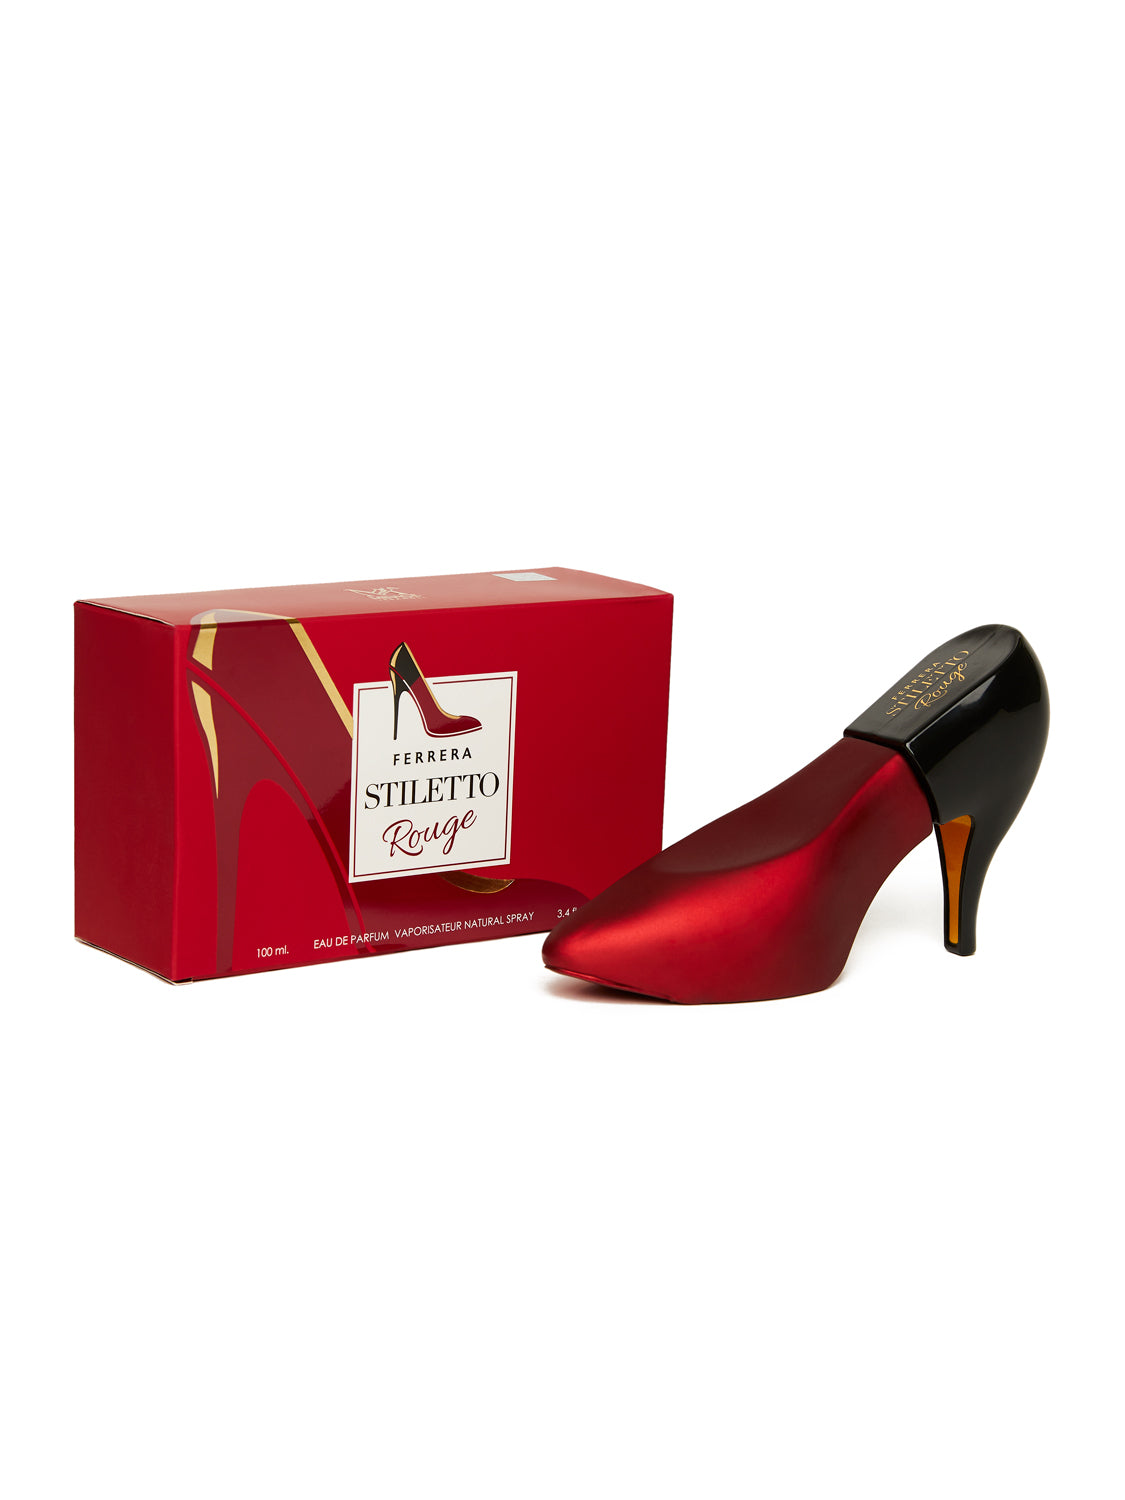 Ferrera Stiletto Rouge Fragrance